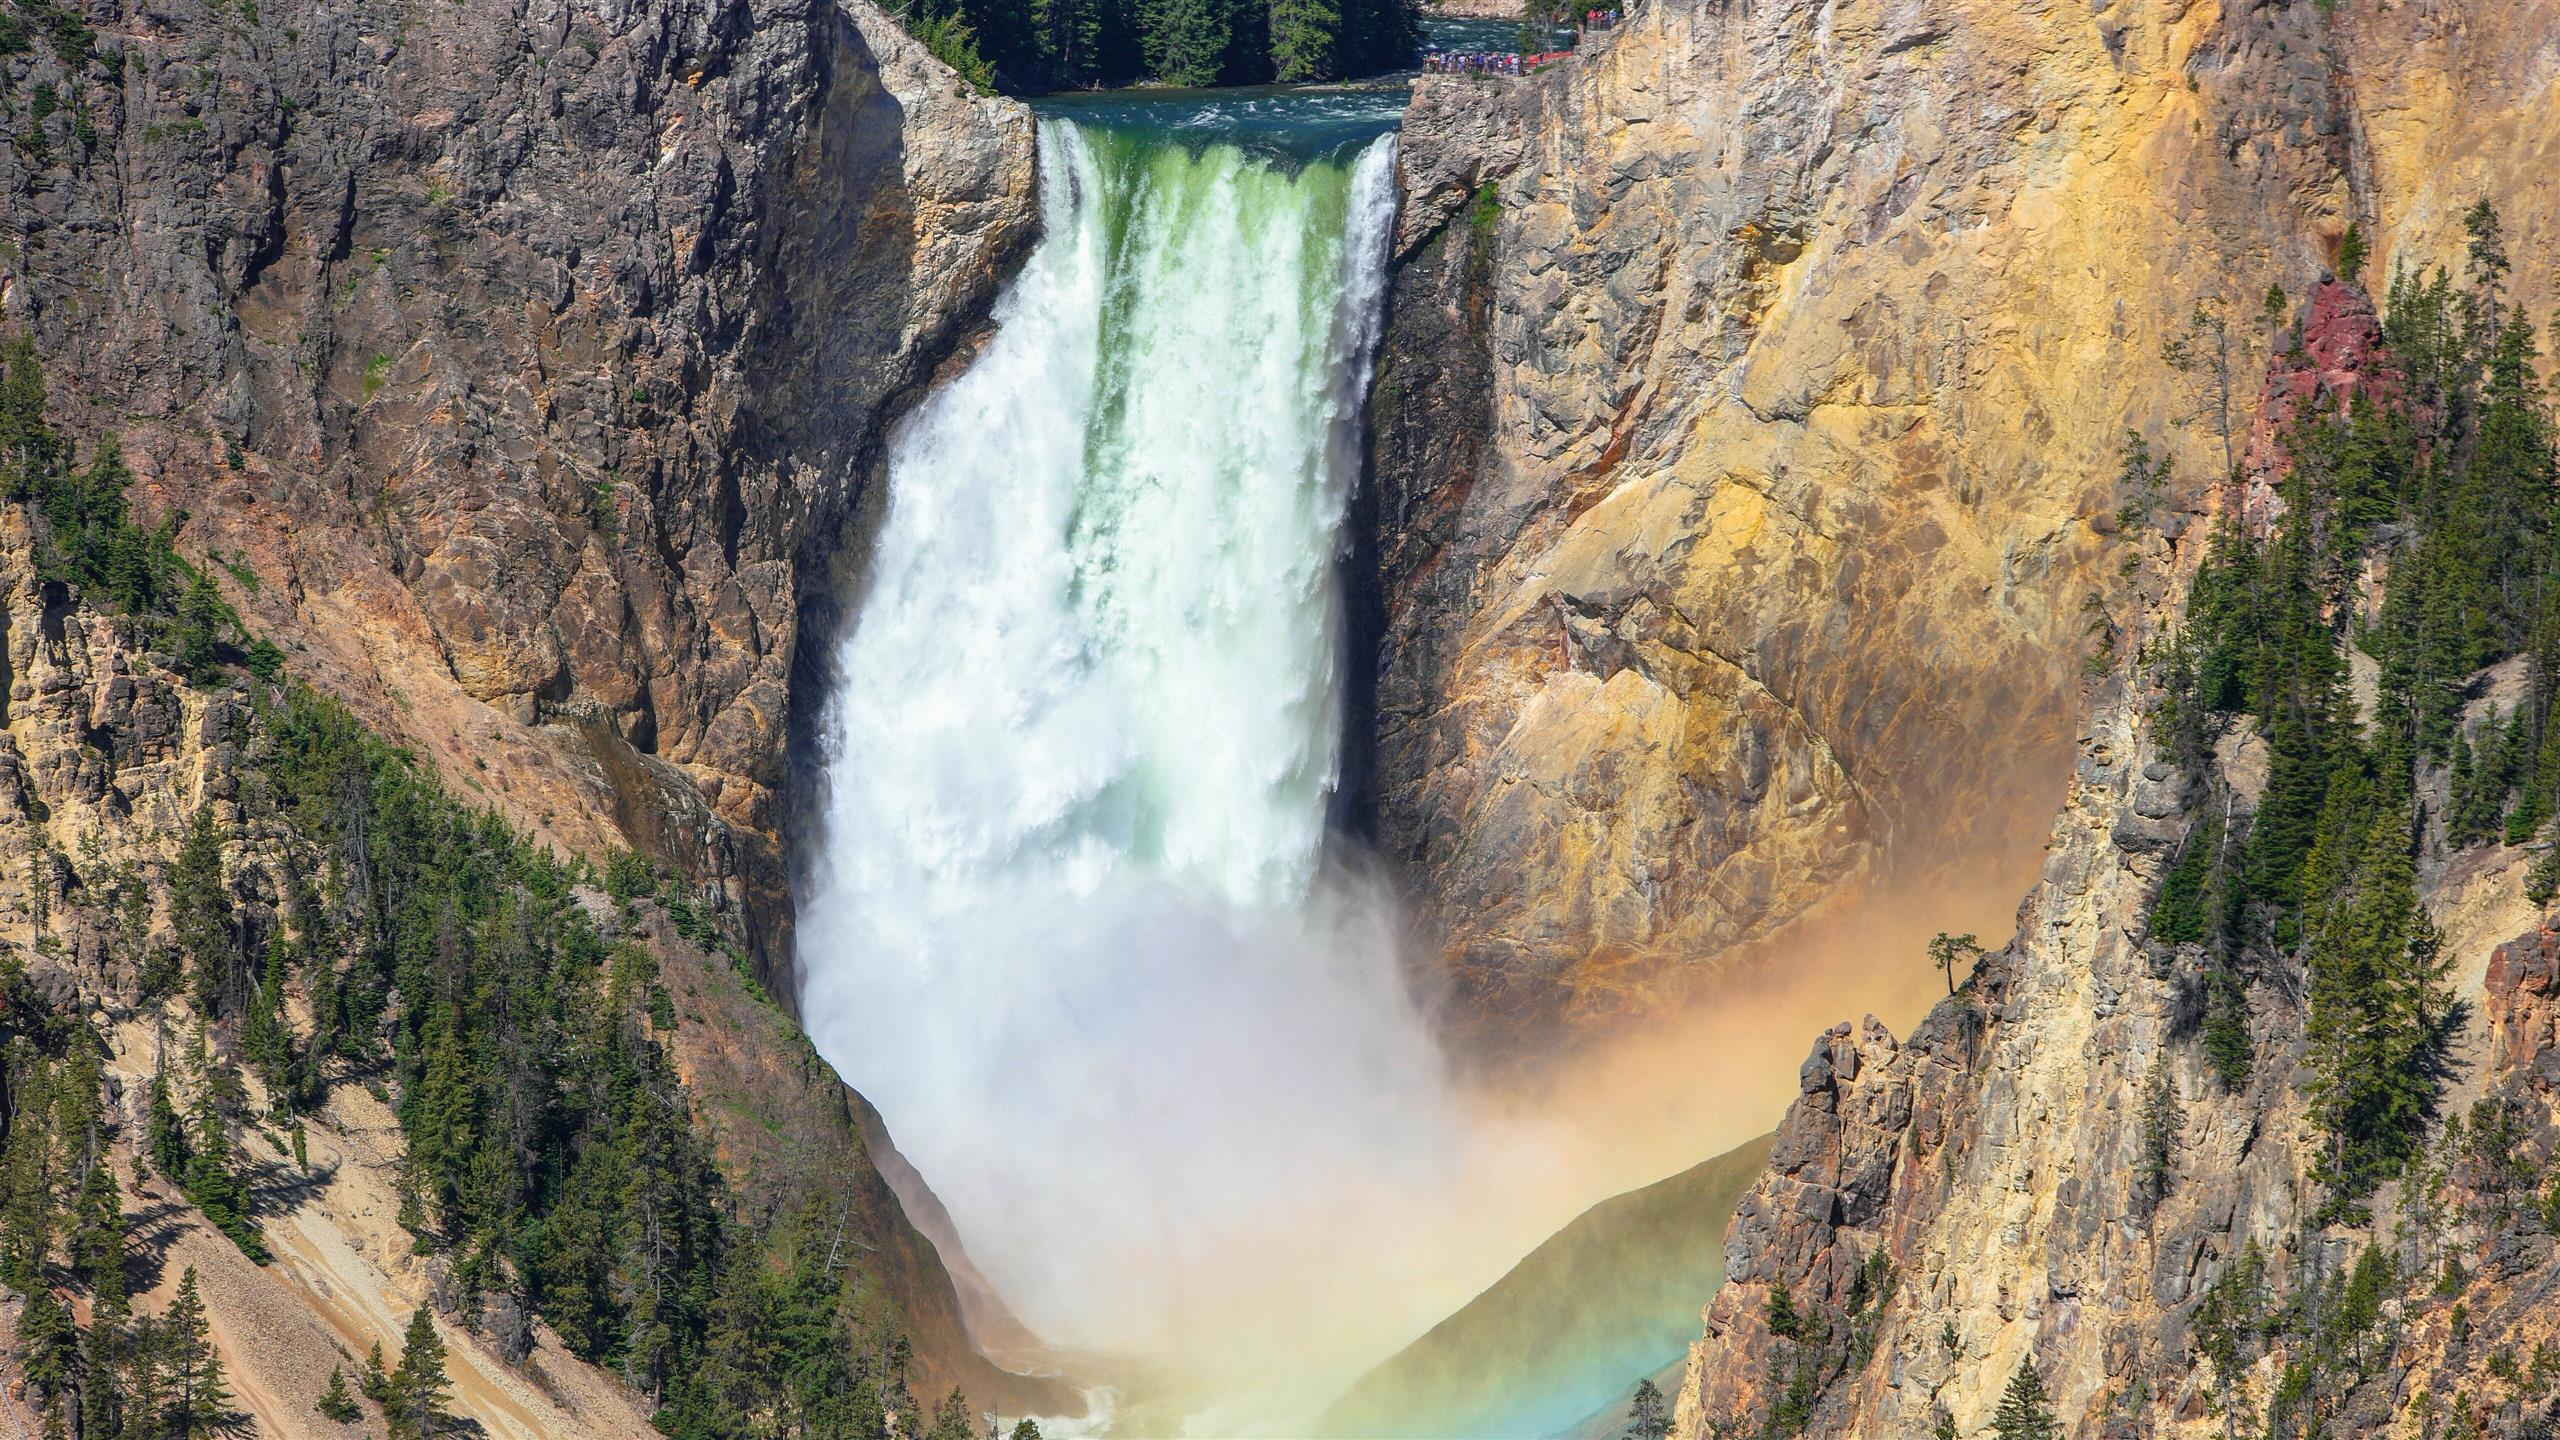 2560x1440 5K Wallpaper of Upper Yellowstone Waterfall in US